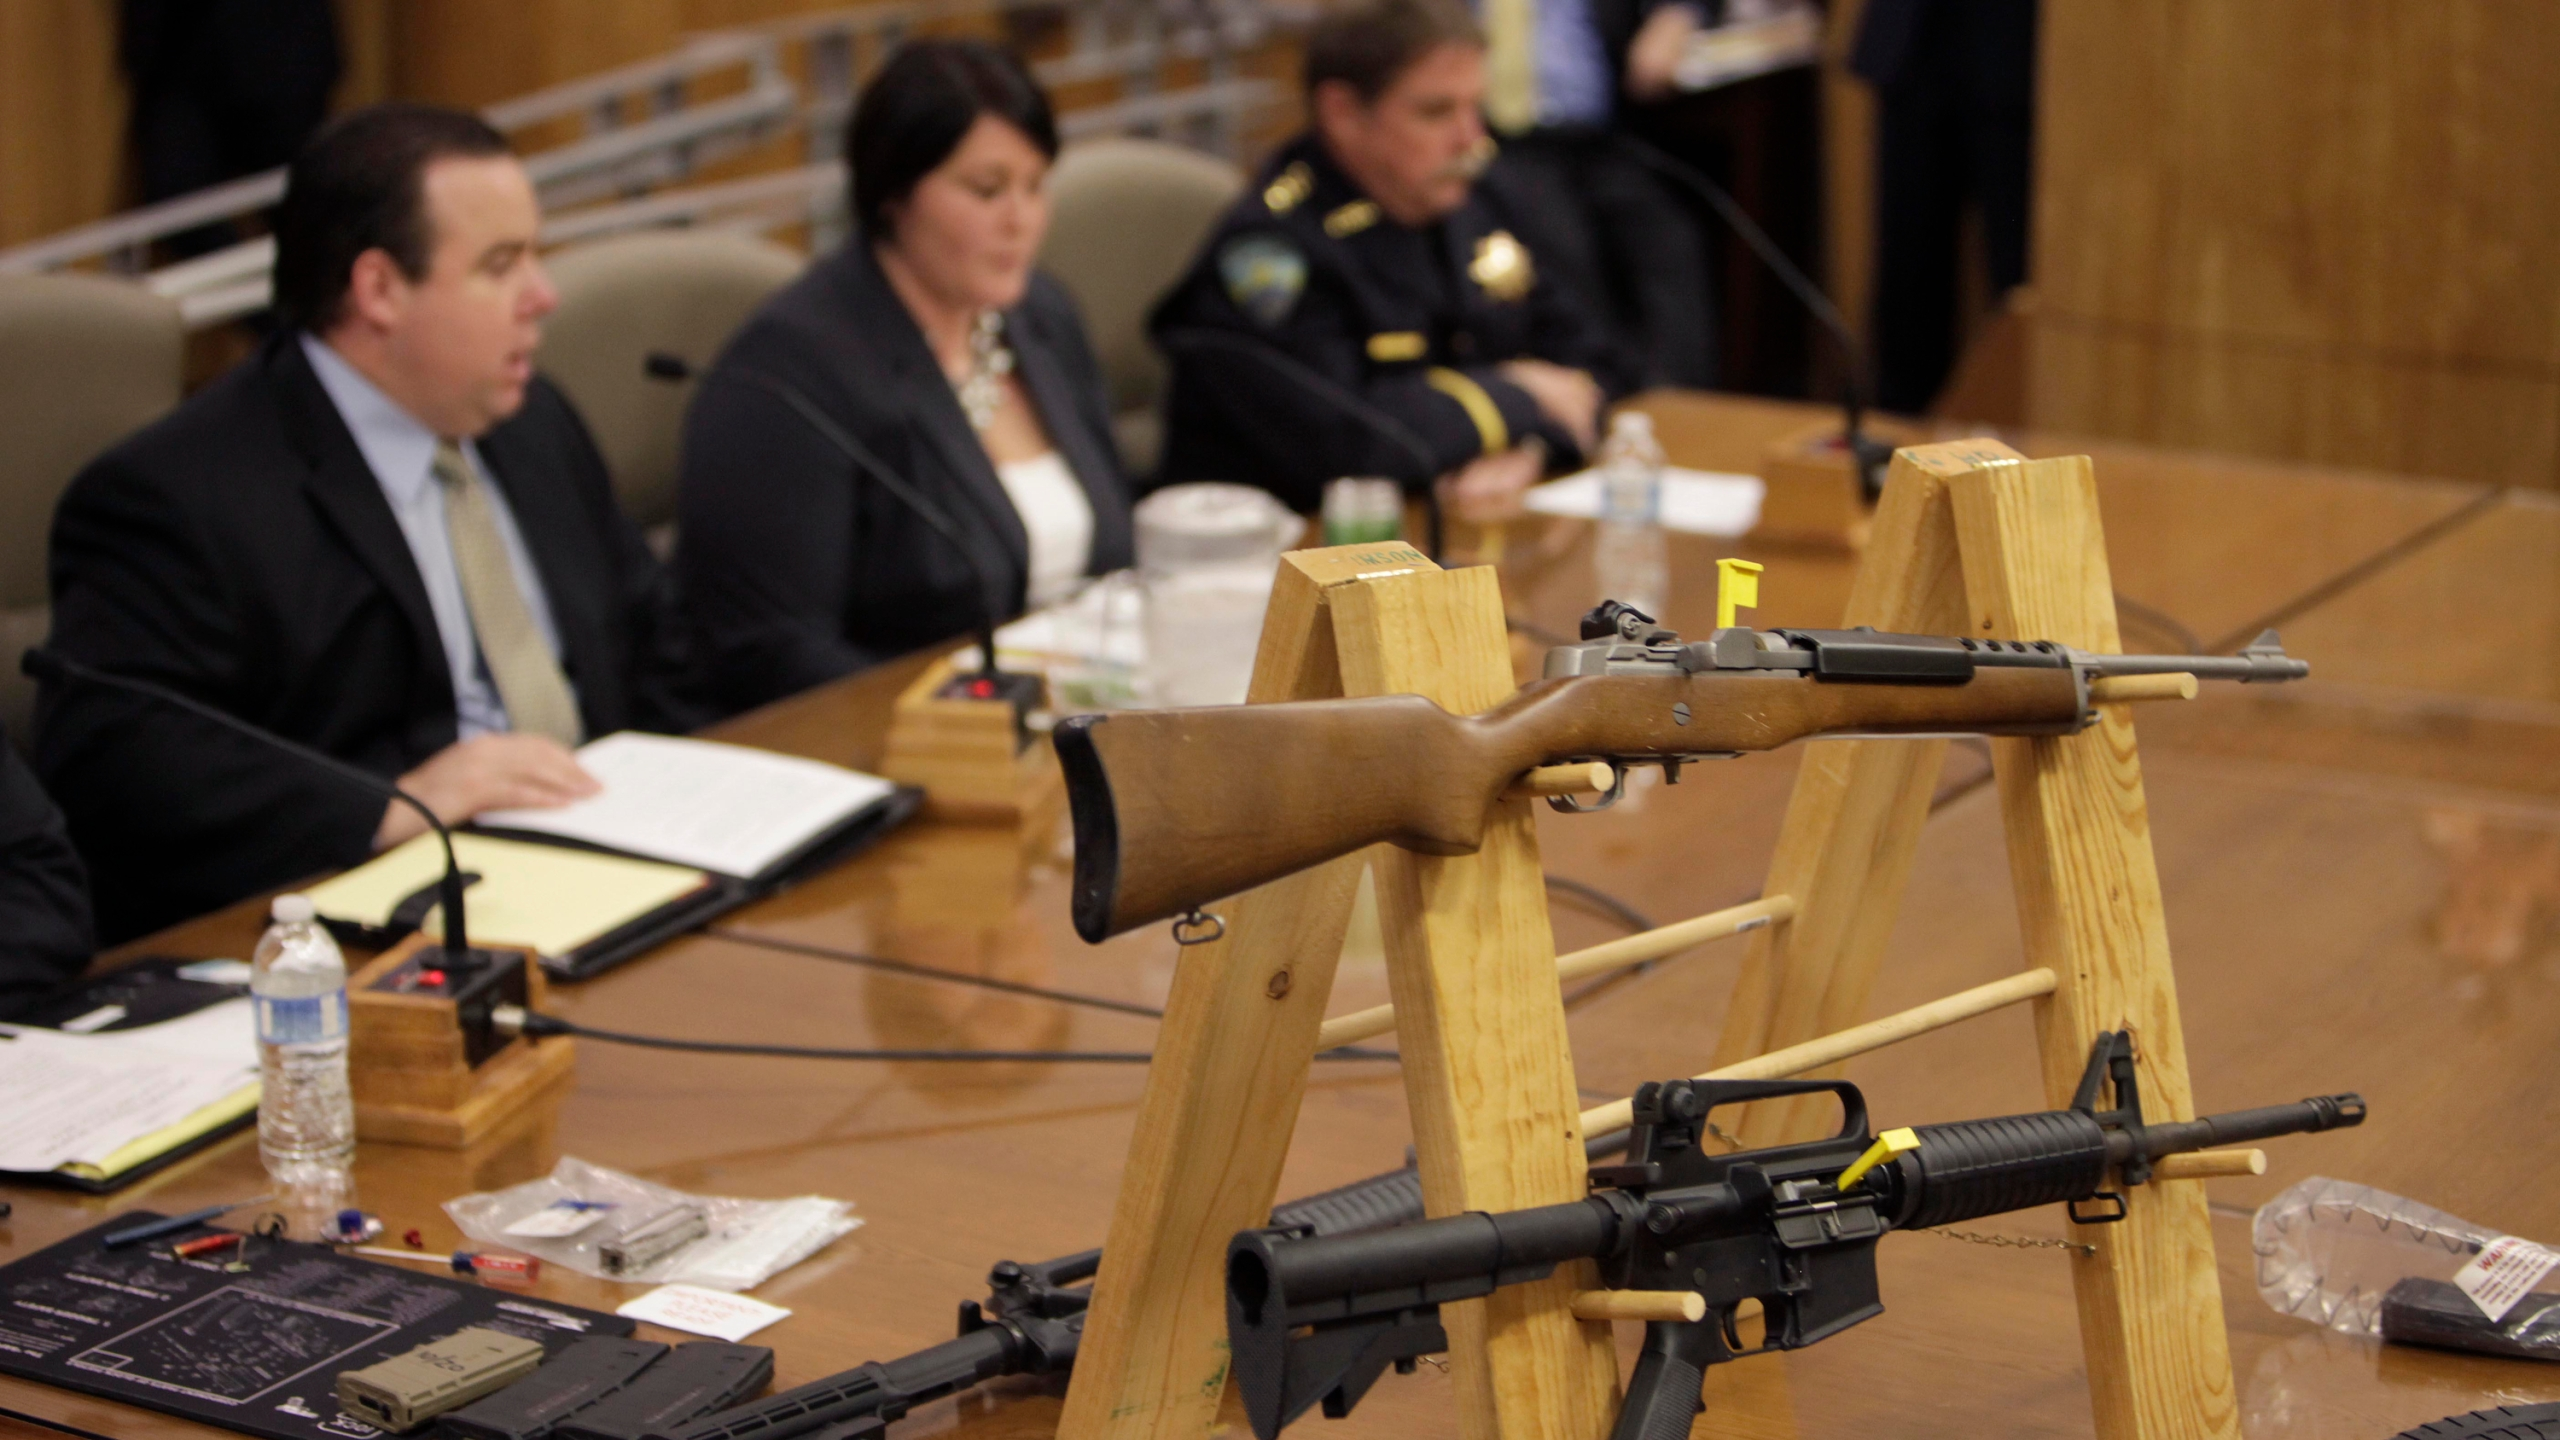 Semi-automatic rifles and large capacity magazines are displayed during a joint legislative informational hearing about gun control at the Capitol in Sacramento on Jan. 29, 2013. (Steve Yeater / Associated Press)